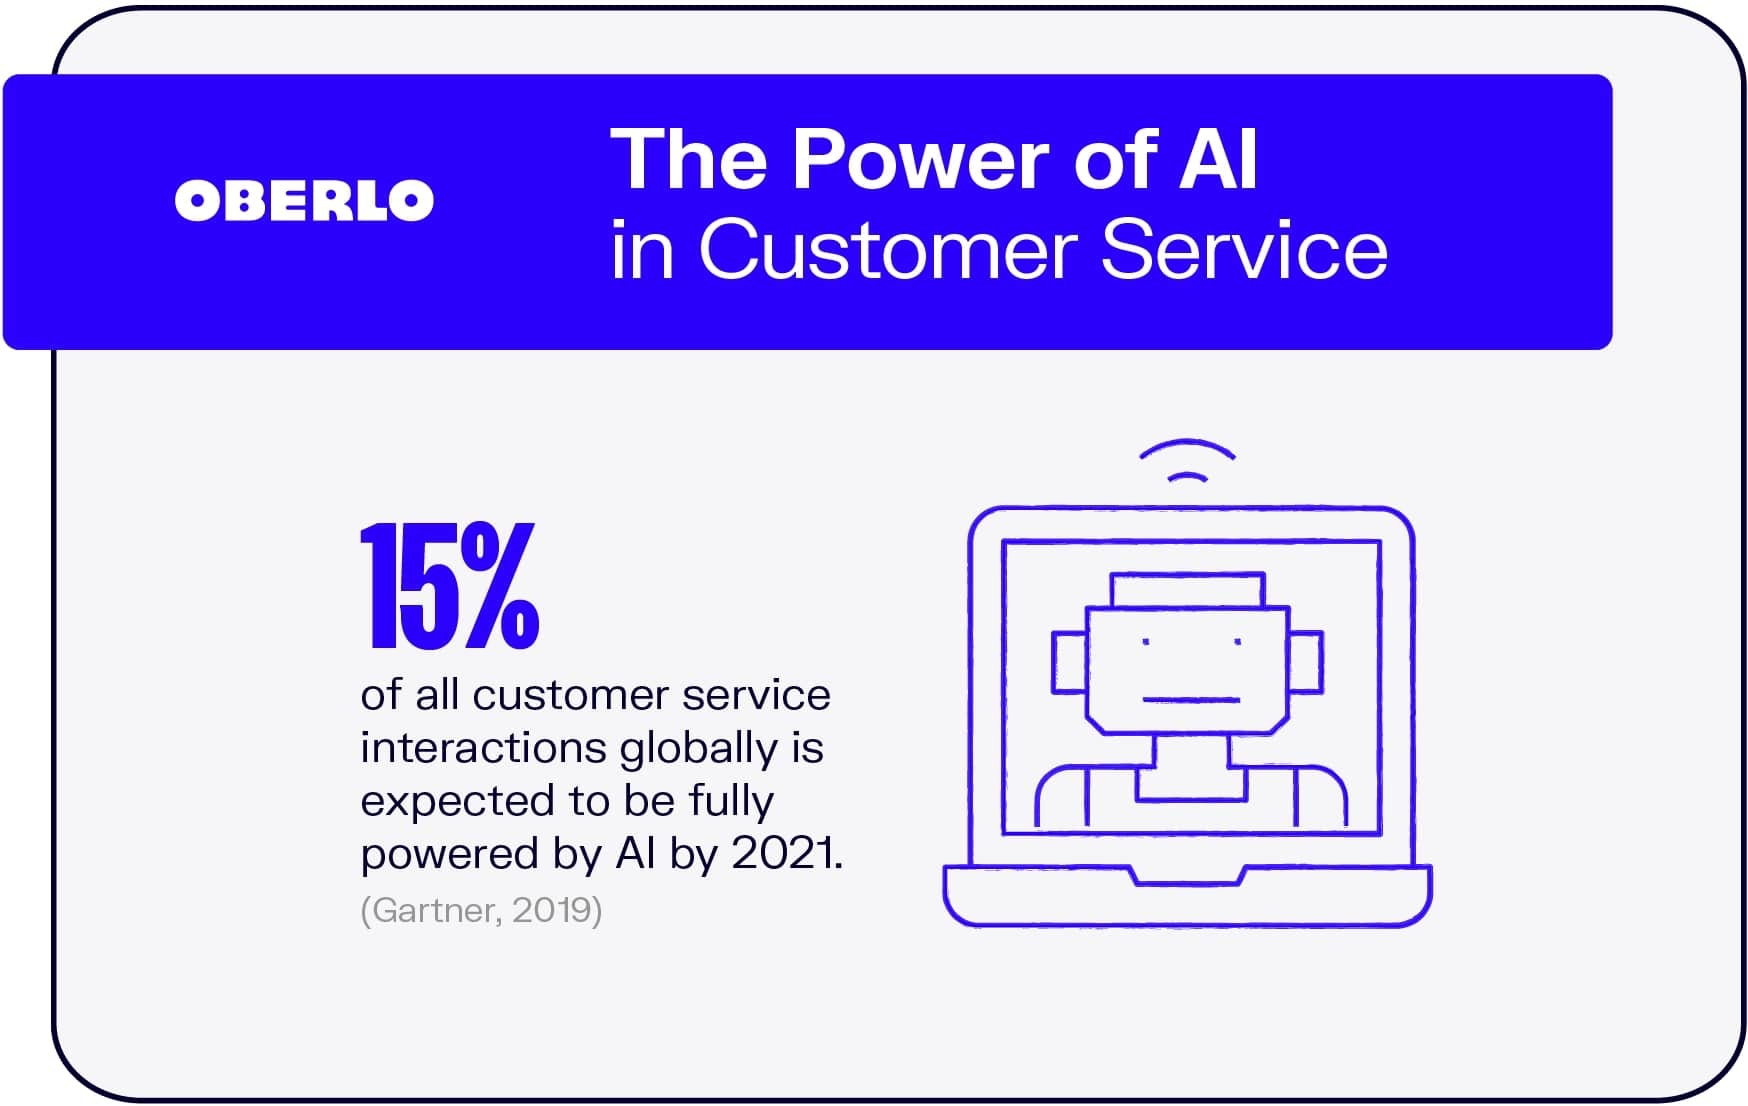 The Power of AI in Customer Service